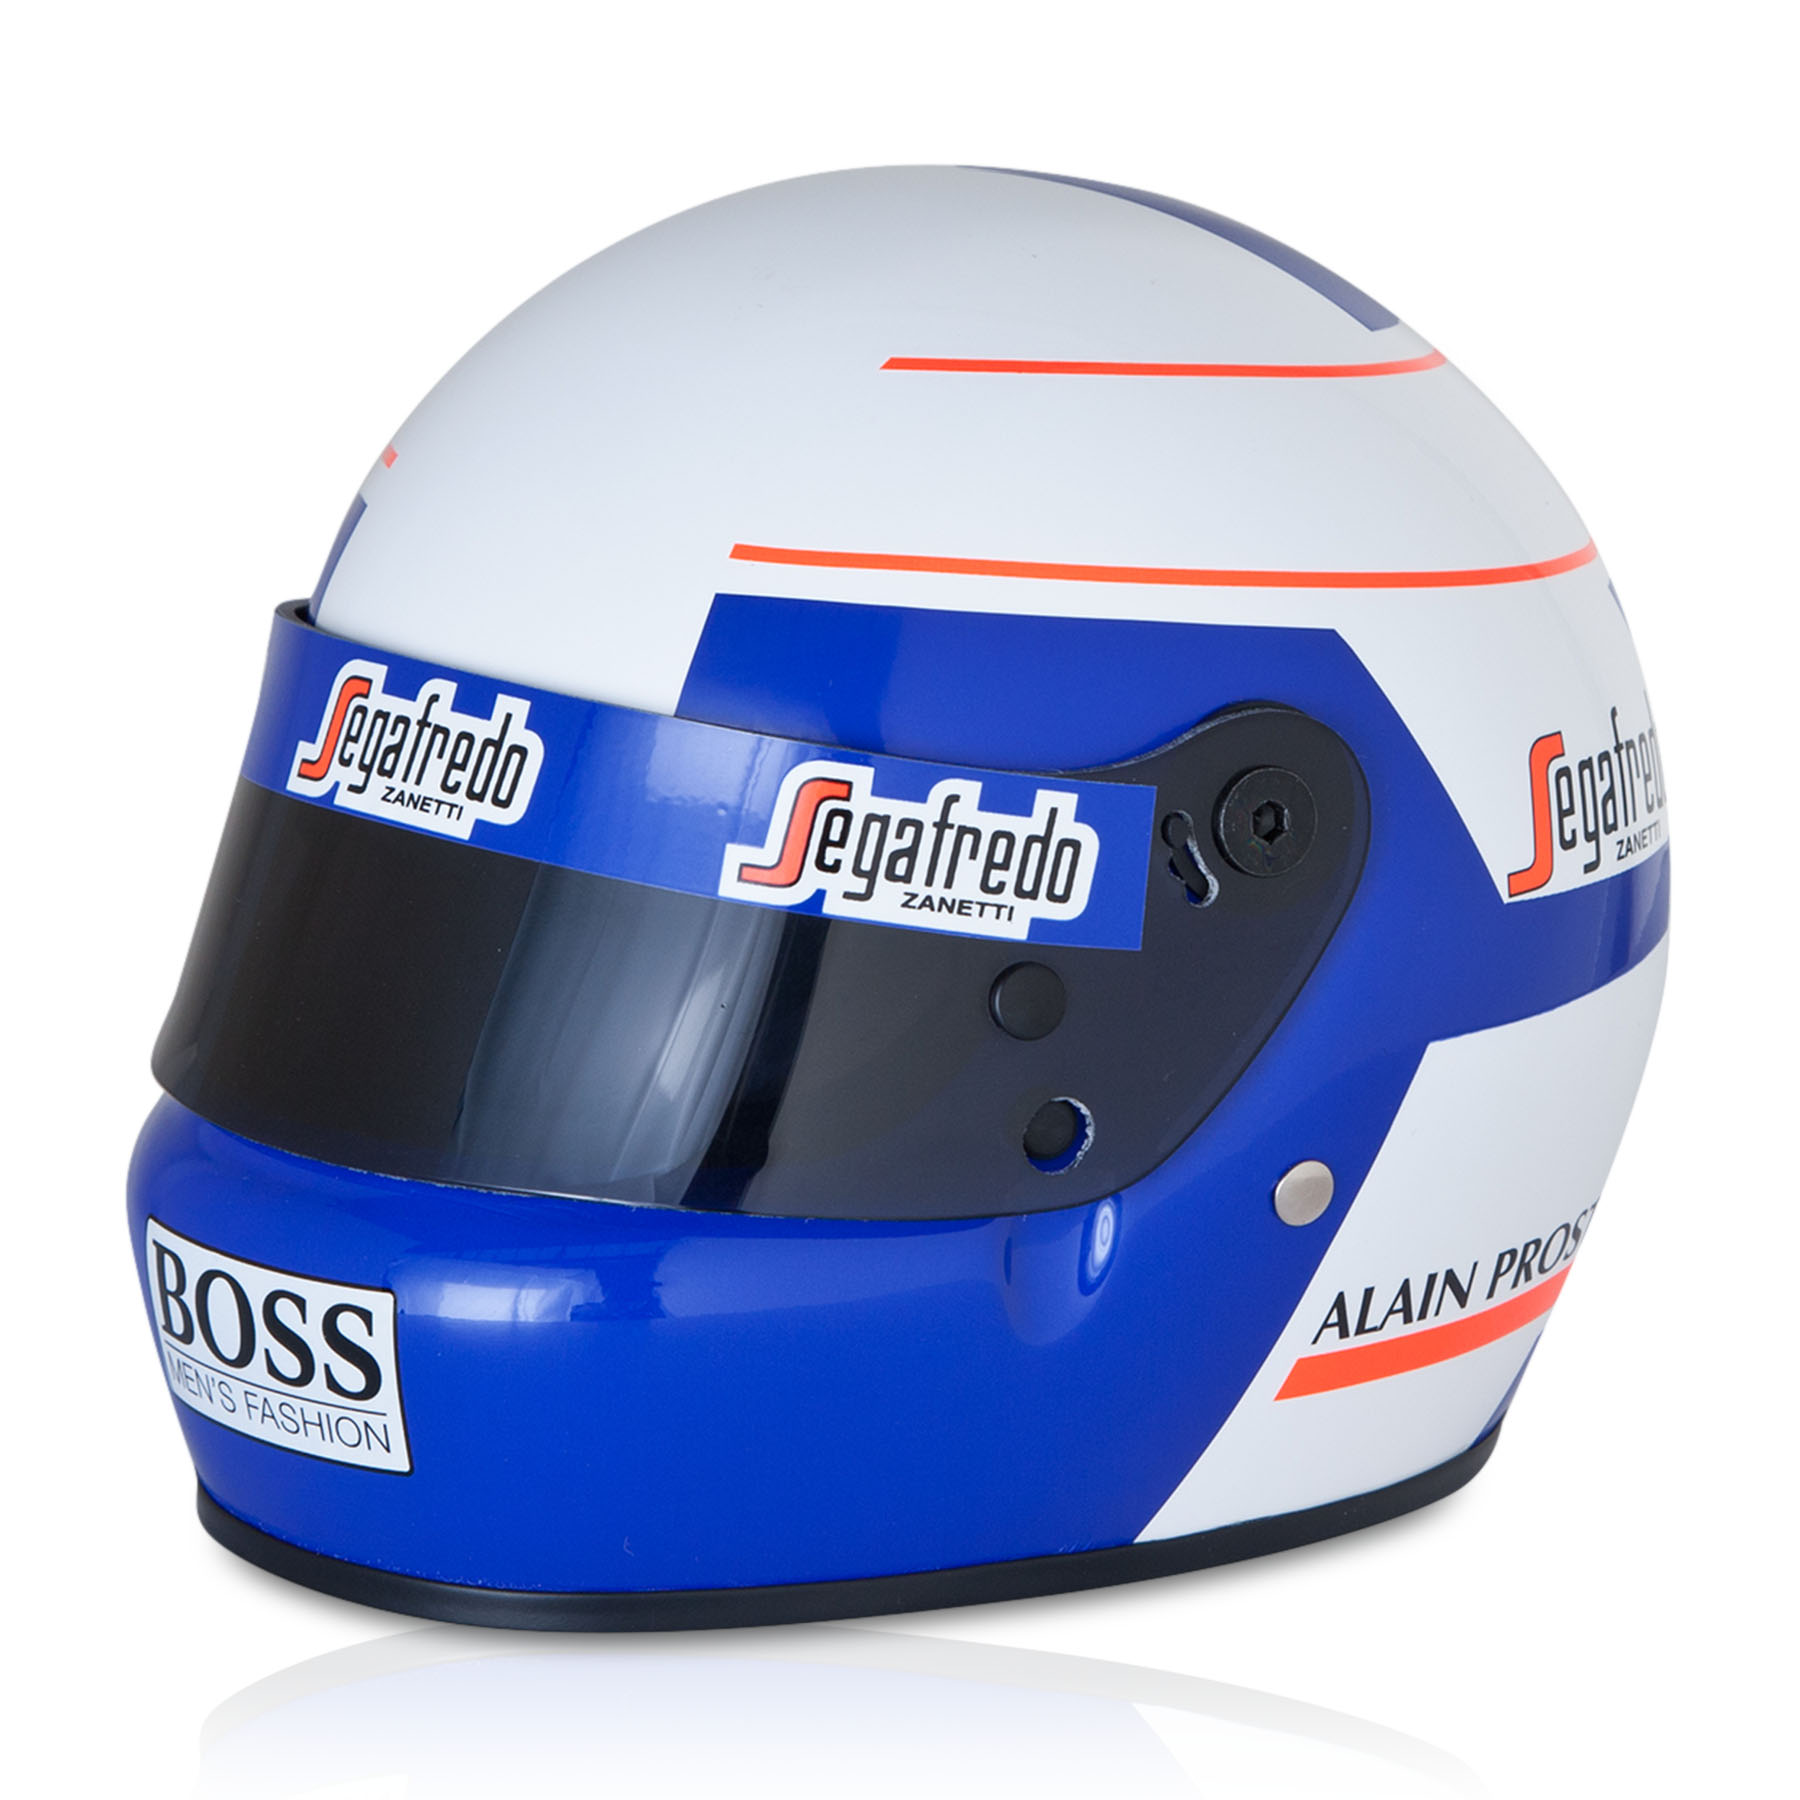 McLaren 50th Anniversary Alain Prost World Champion 1985 1:2 Scale Helmet